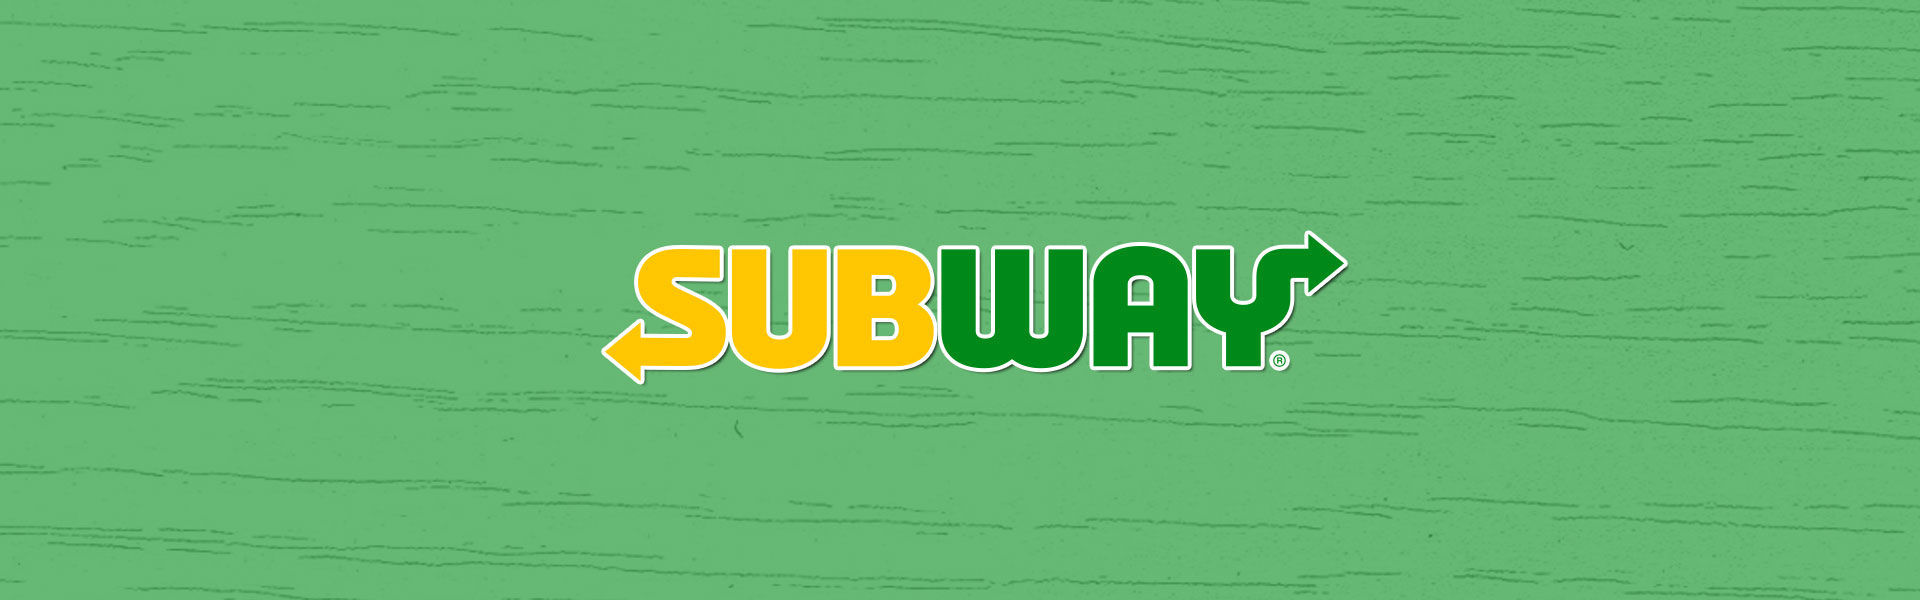 Subway Header